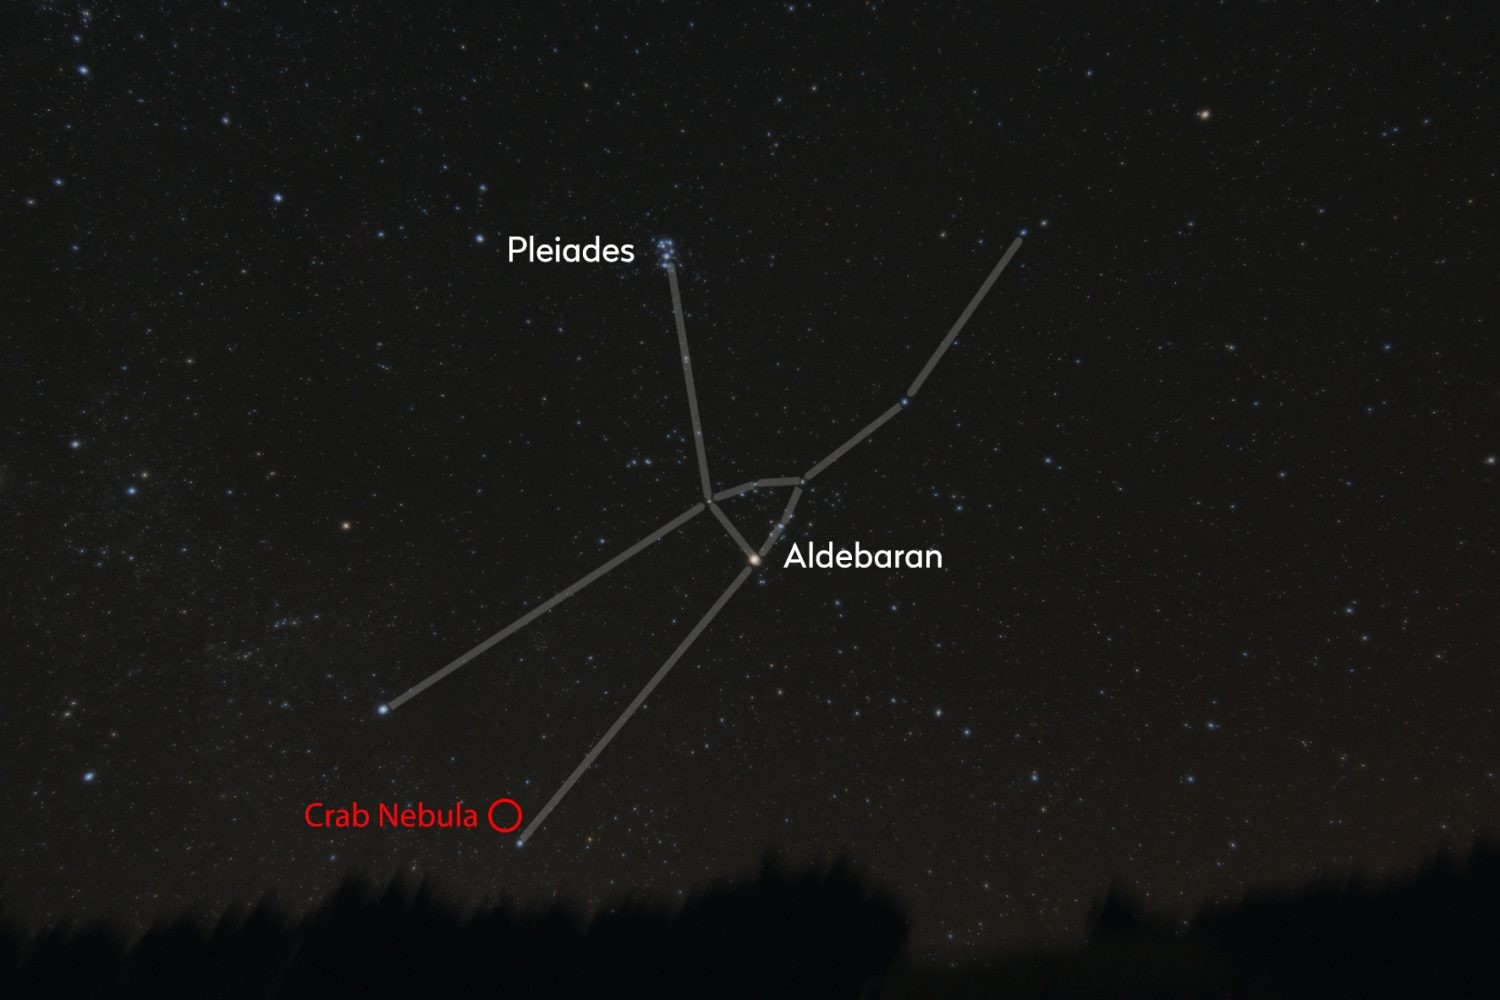 Locate the Taurus constellation (use the Pleiades to help you) to find Aldebaran and the Crab Nebula. Credit: Bernard Hubl / CCDGuide.com